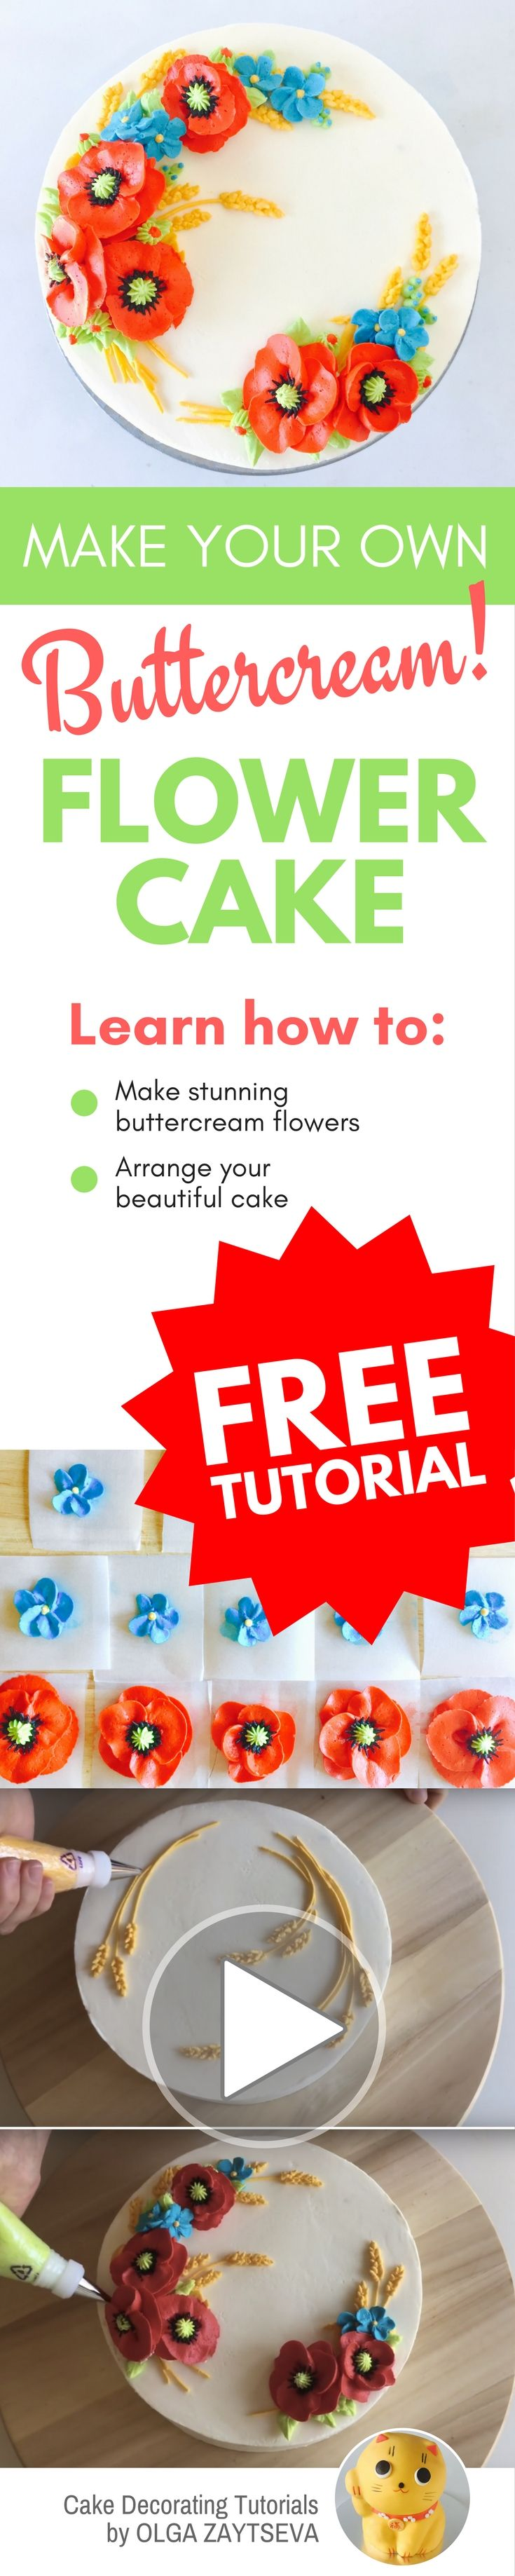 How to make Red Poppy Buttercream flower cake - Cake decorating tutorial by Olga Zaytseva. Learn how to make buttercream poppies, pipe cornflowers and wheat spikelets, and create this floral wreath cake. #cakedecorating #cakedecoratingtutorial #buttercreamflowercake #buttercreamflowers